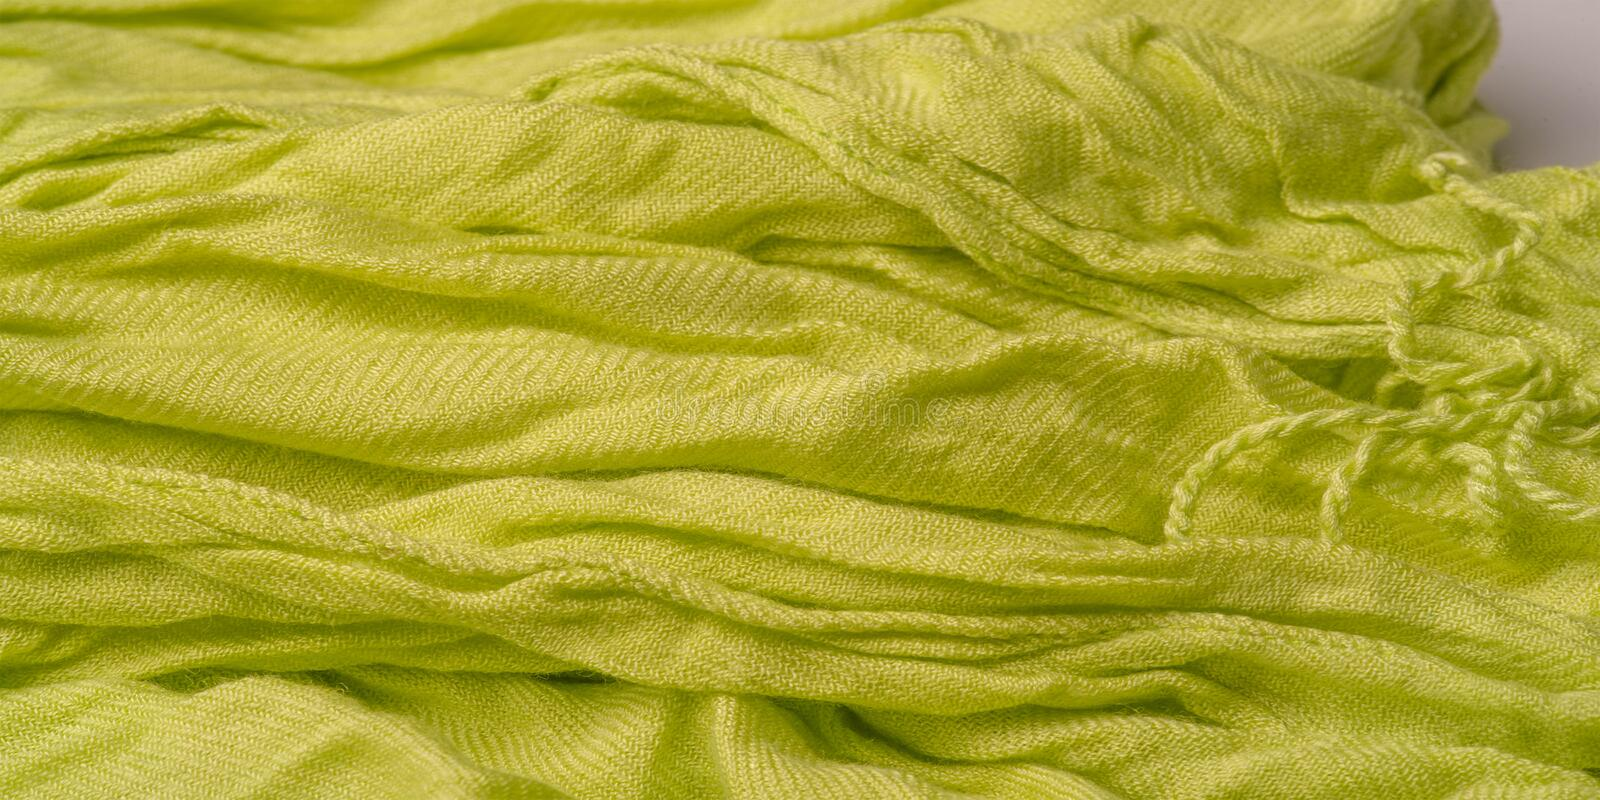 Texture, background, pattern, postcard, silk fabric, light green color, aureolin, artificially wrinkled fabric, wrinkled texture,. Texture background pattern royalty free stock photo